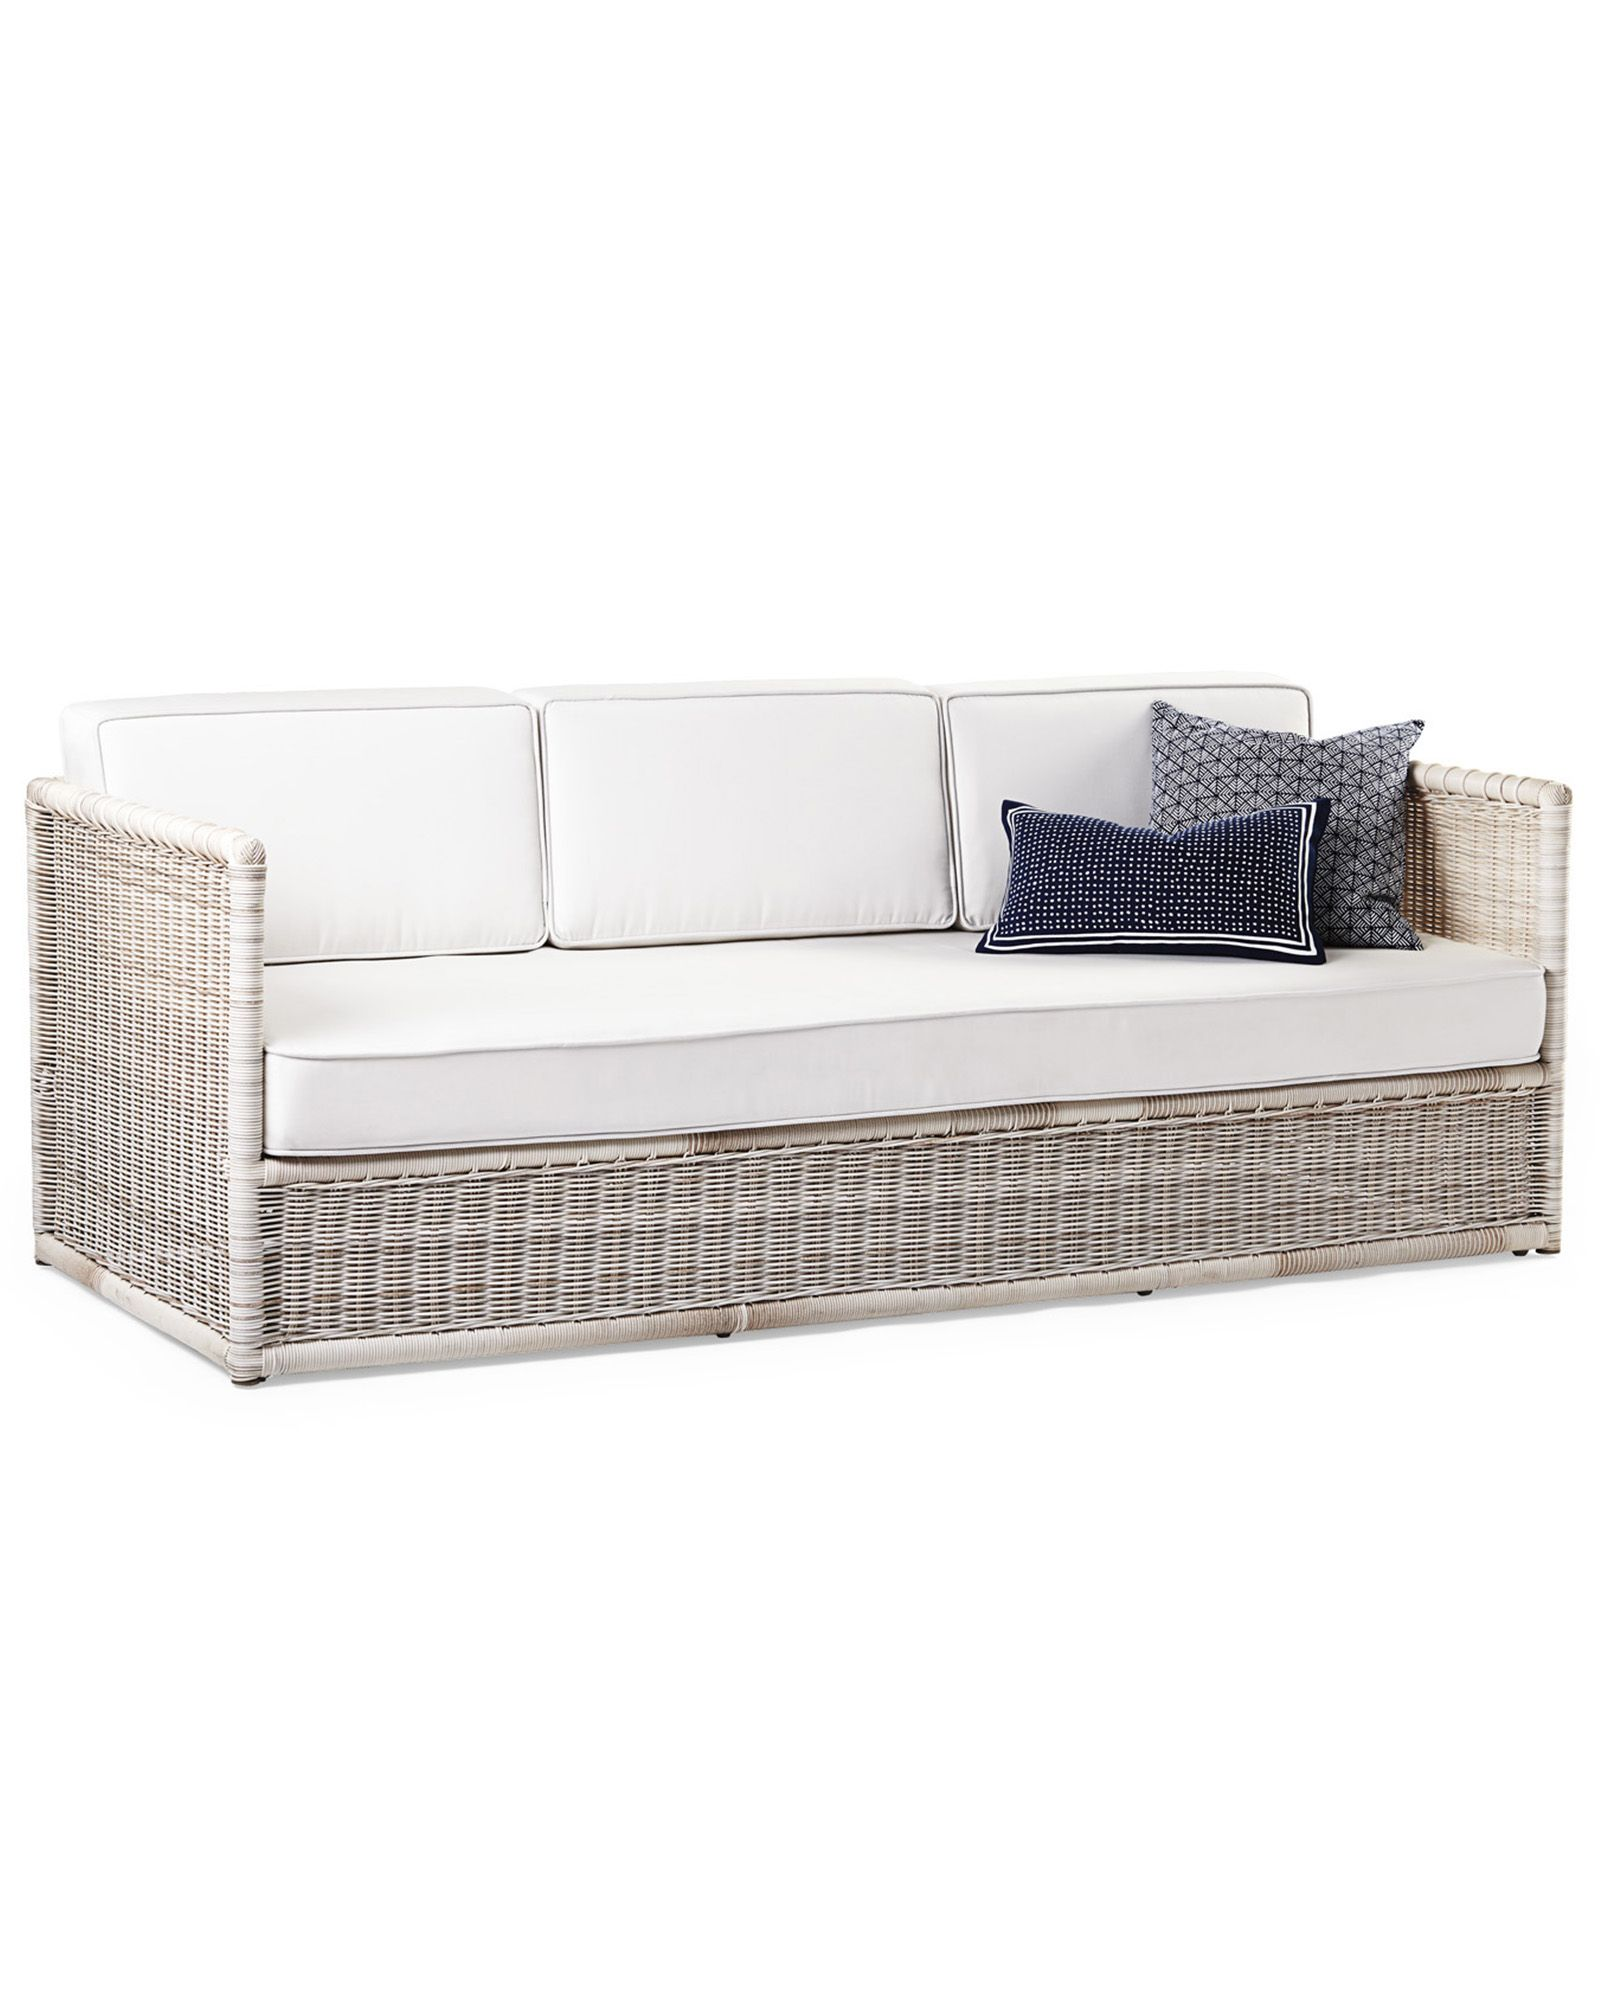 Pacifica Sofa Driftwood Serena & Lily Outdoor